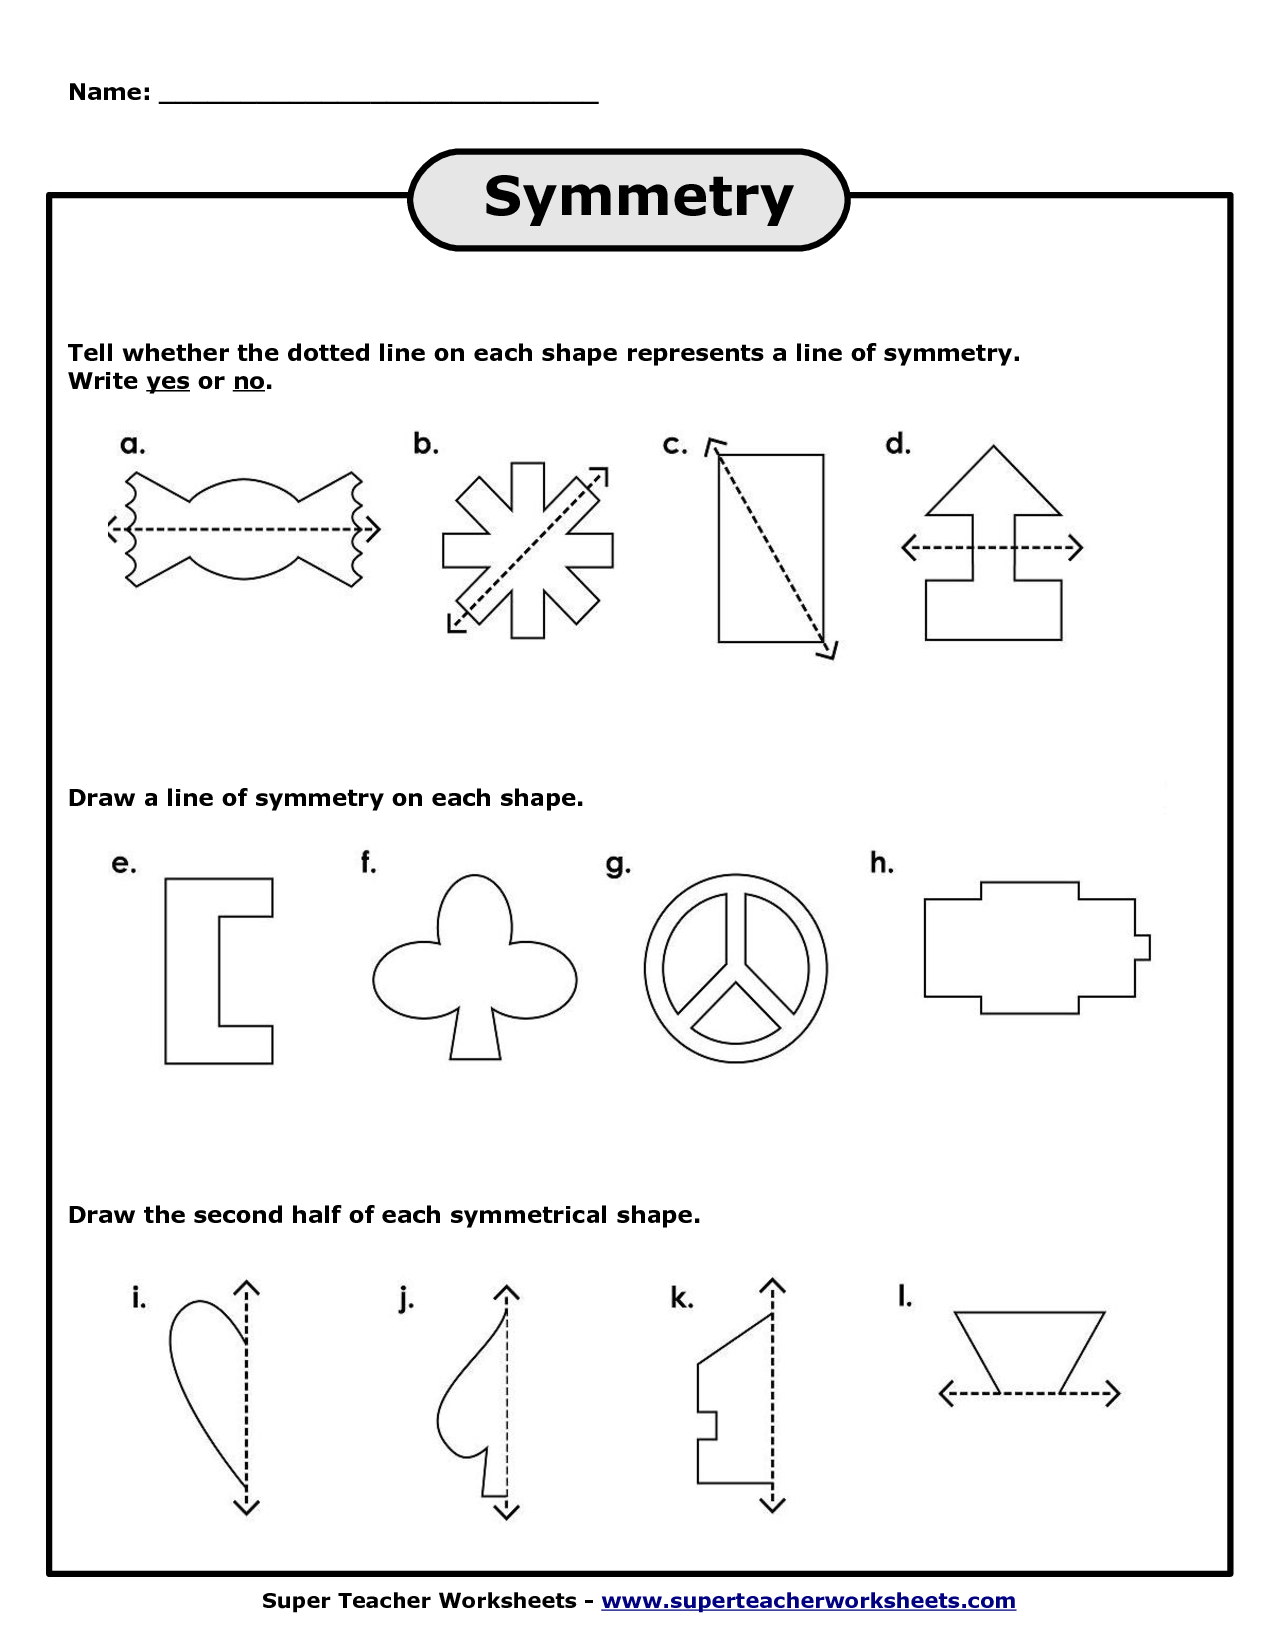 Super Teacher Worksheet Symmetry